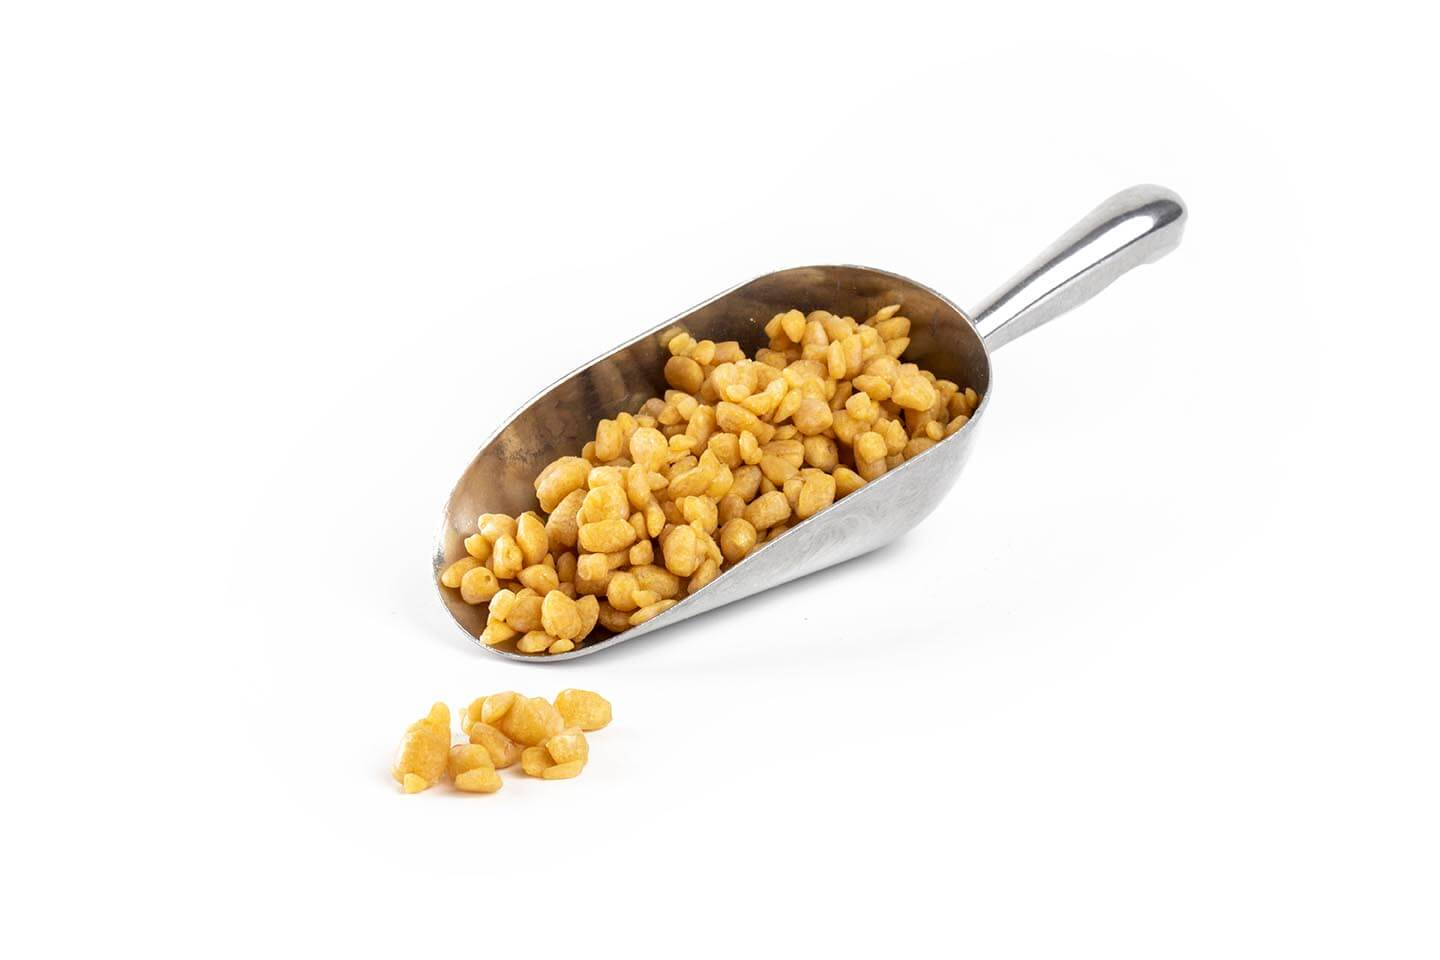 Organic Honeycomb Kibble 2-10mm CB Coated in stainless steel scoop